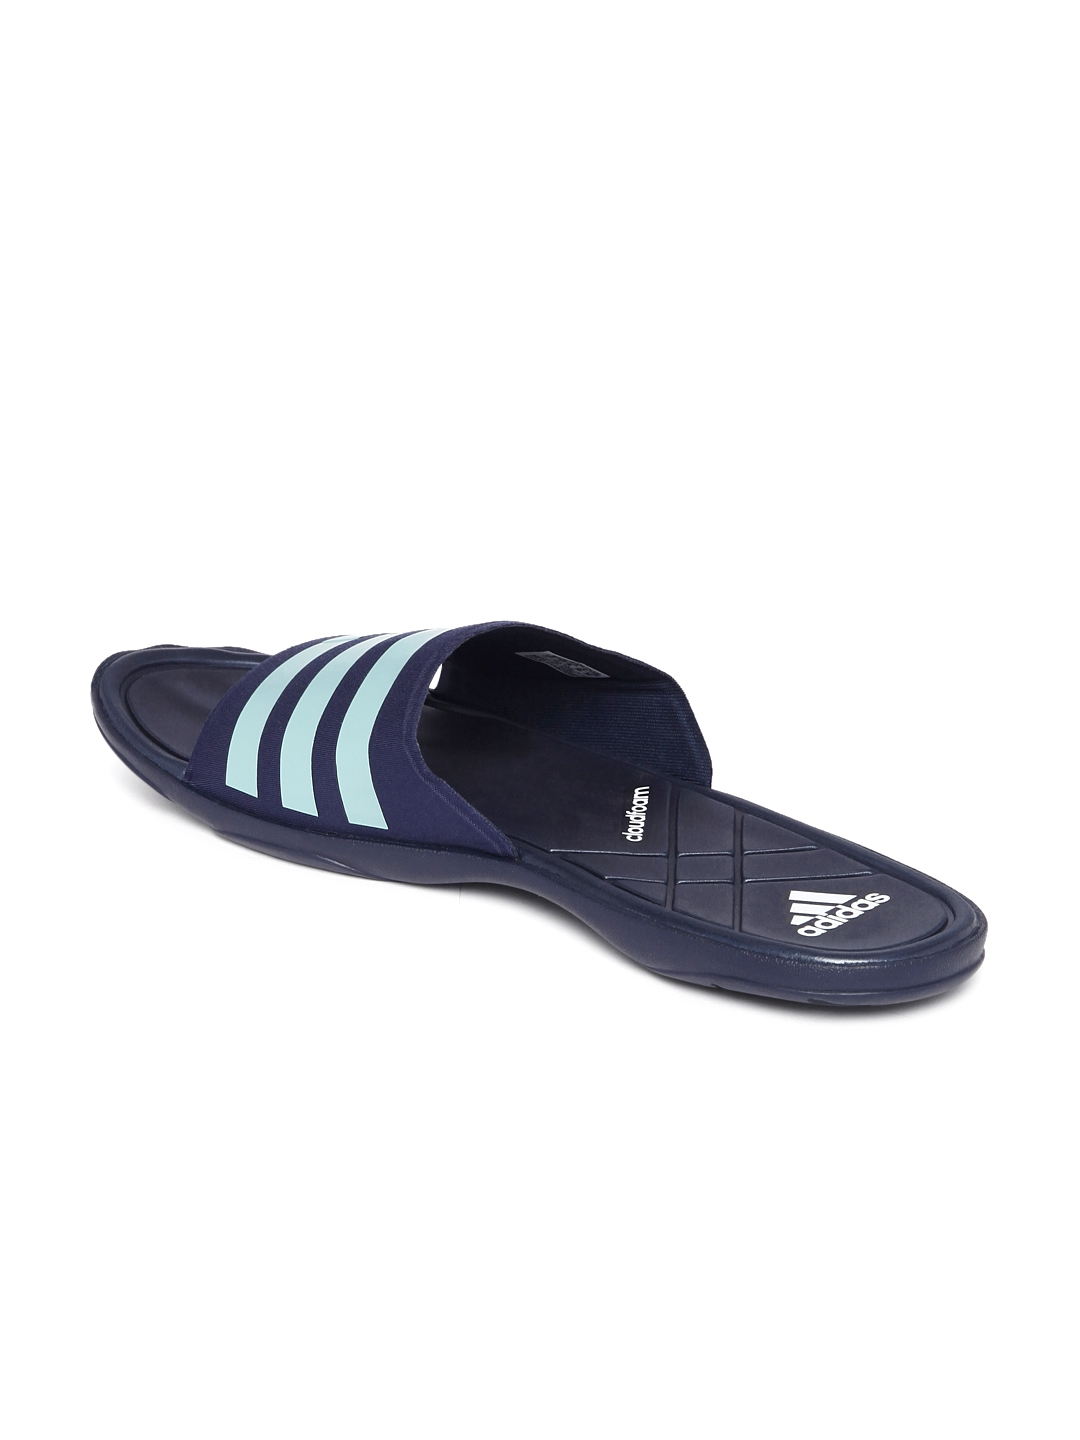 7d1945710 Buy ADIDAS Men Navy   Light Blue Adipure CF Striped Flip Flops - Flip Flops  for Men 1501476